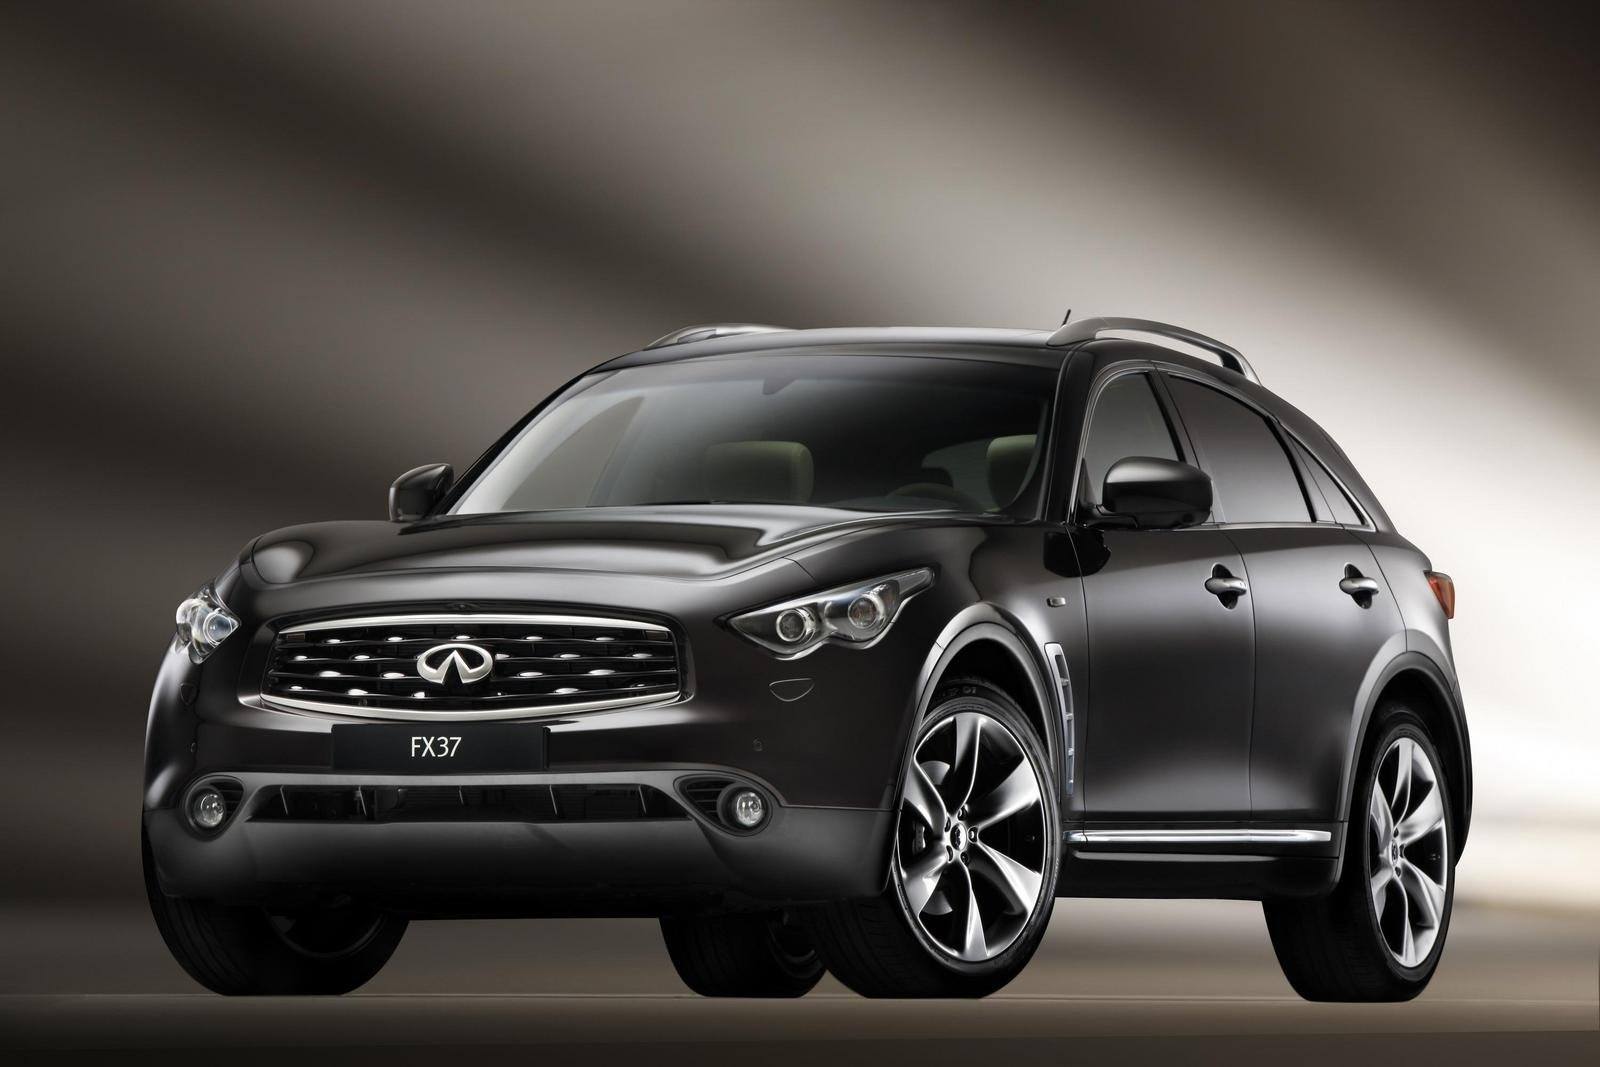 infiniti fx37 to debut at the paris auto show picture 263592 car news top speed. Black Bedroom Furniture Sets. Home Design Ideas